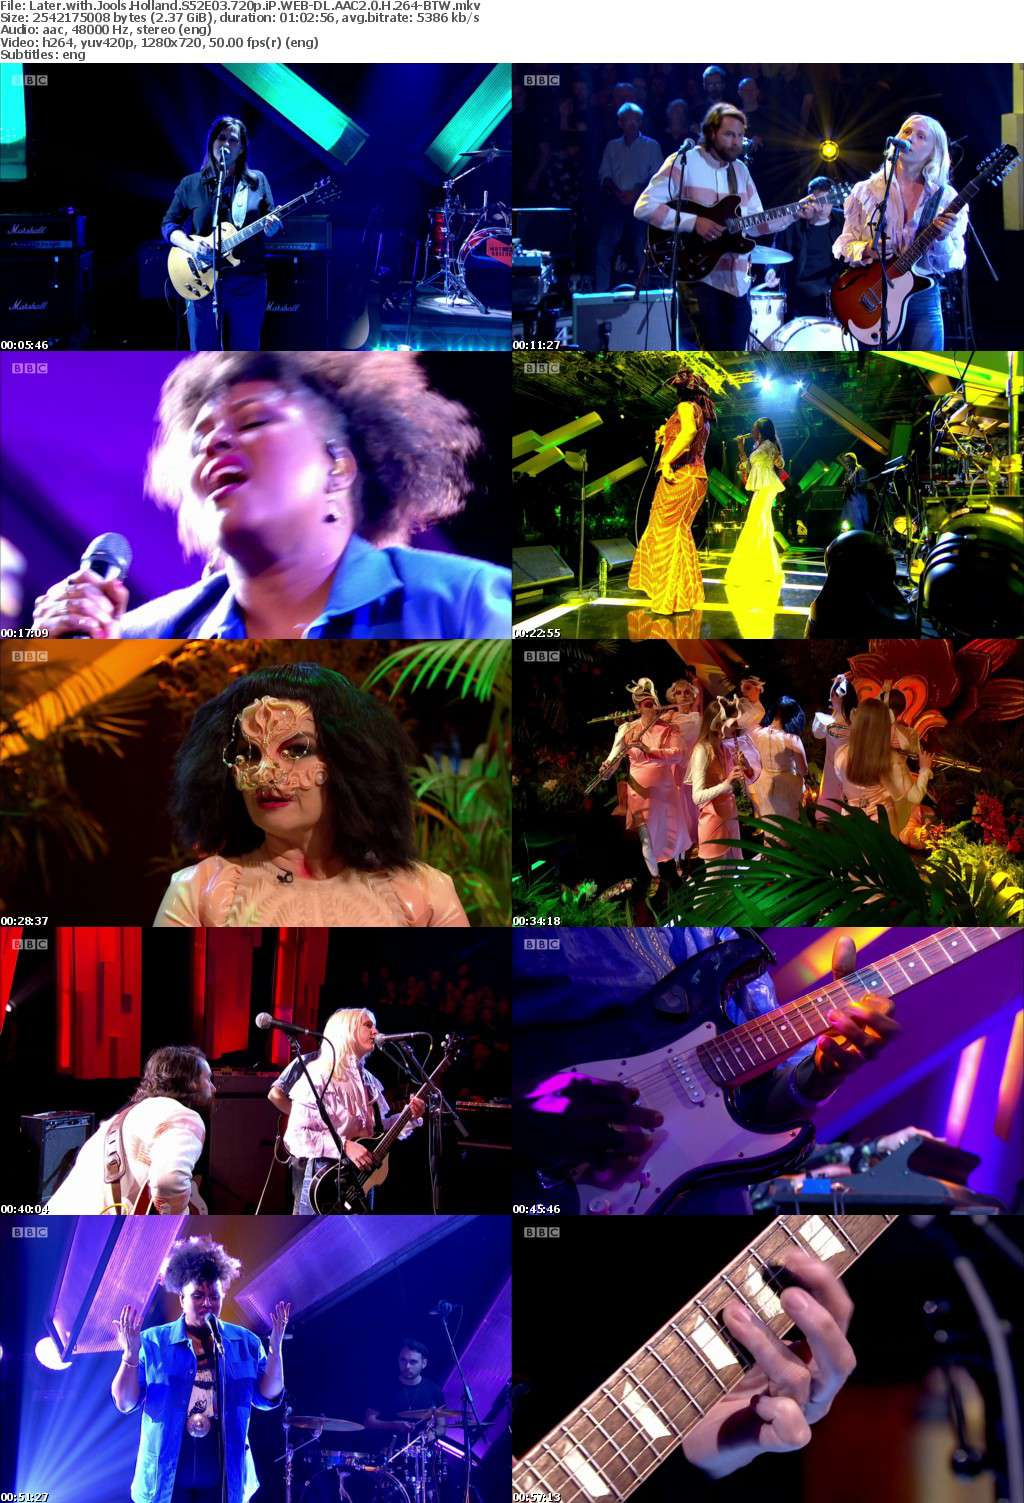 Later with Jools Holland S52E03 720p iP WEB-DL AAC2 0 H 264-BTW